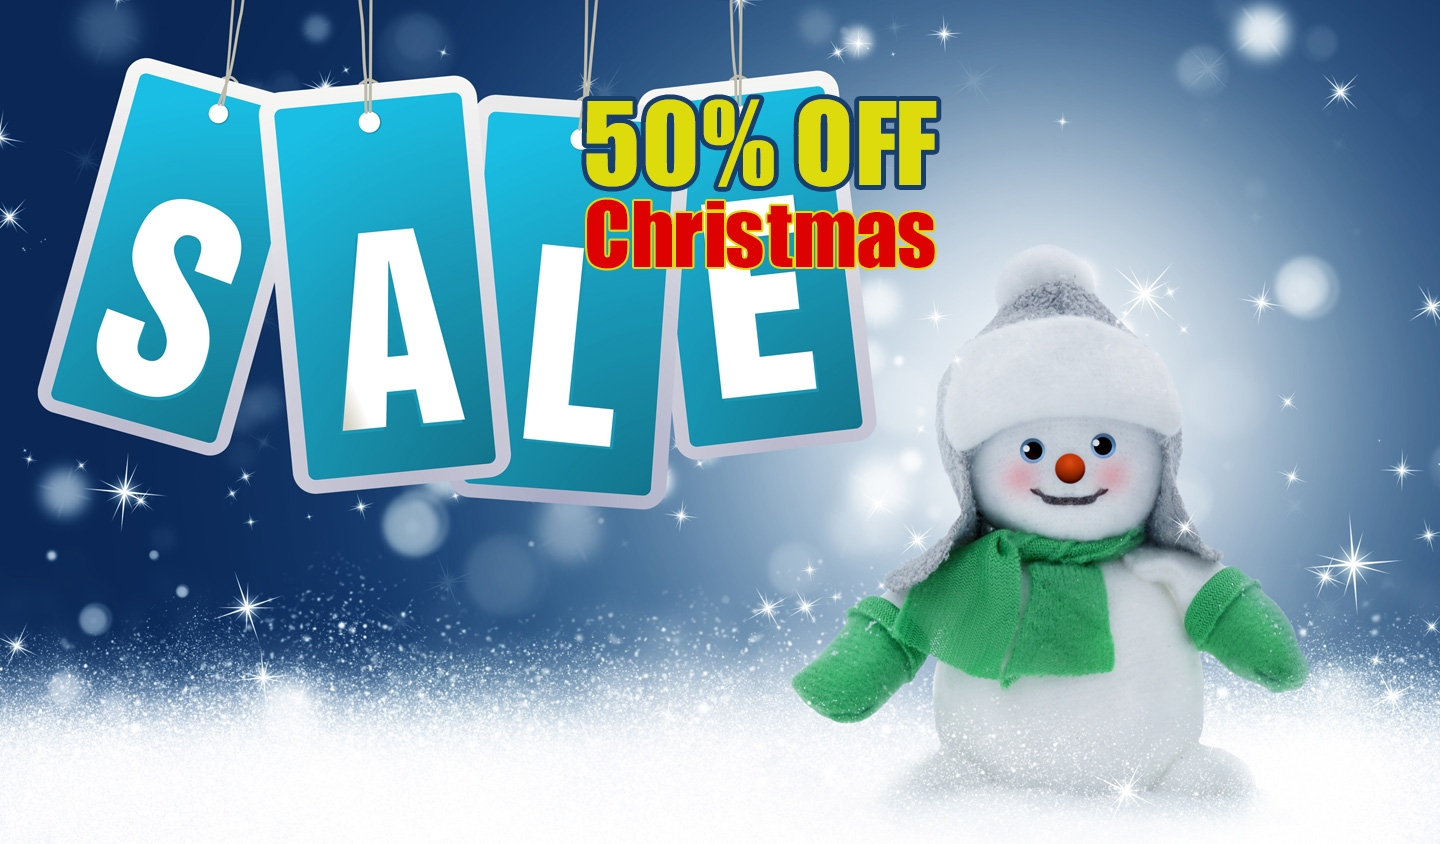 Christmas Sale, 50% OFF Christmas